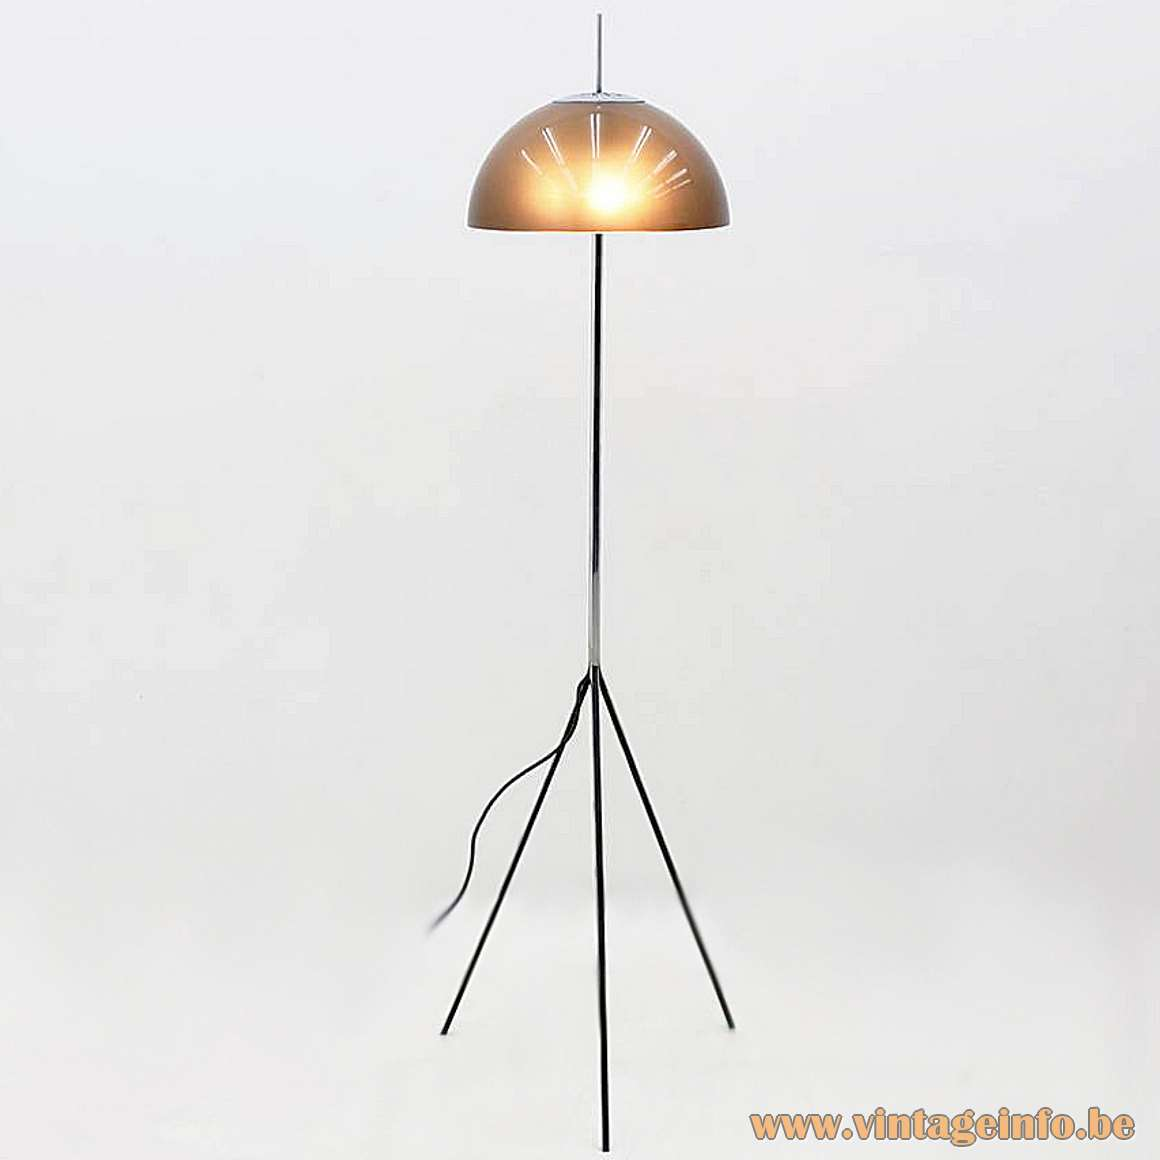 Arteluce Floor Lamp by Gino Sarfatti